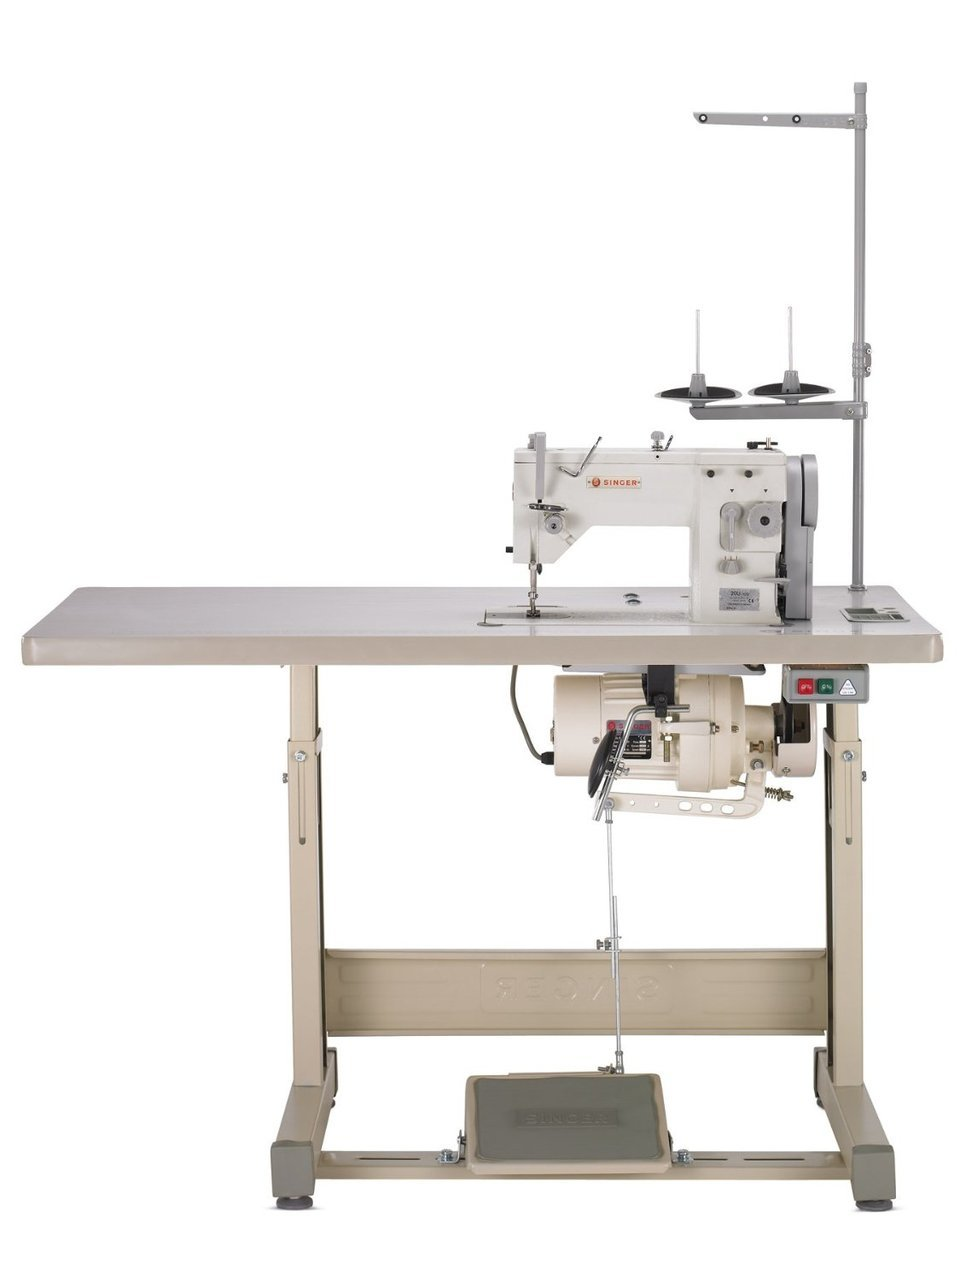 Singer 20-u  Straight Stitch 6 mm, up to 9 mm Zig Zag and Straight stitch  Industrial Sewing Machine, Knee Lifter, Power Stand with Servo Motor. Professional .